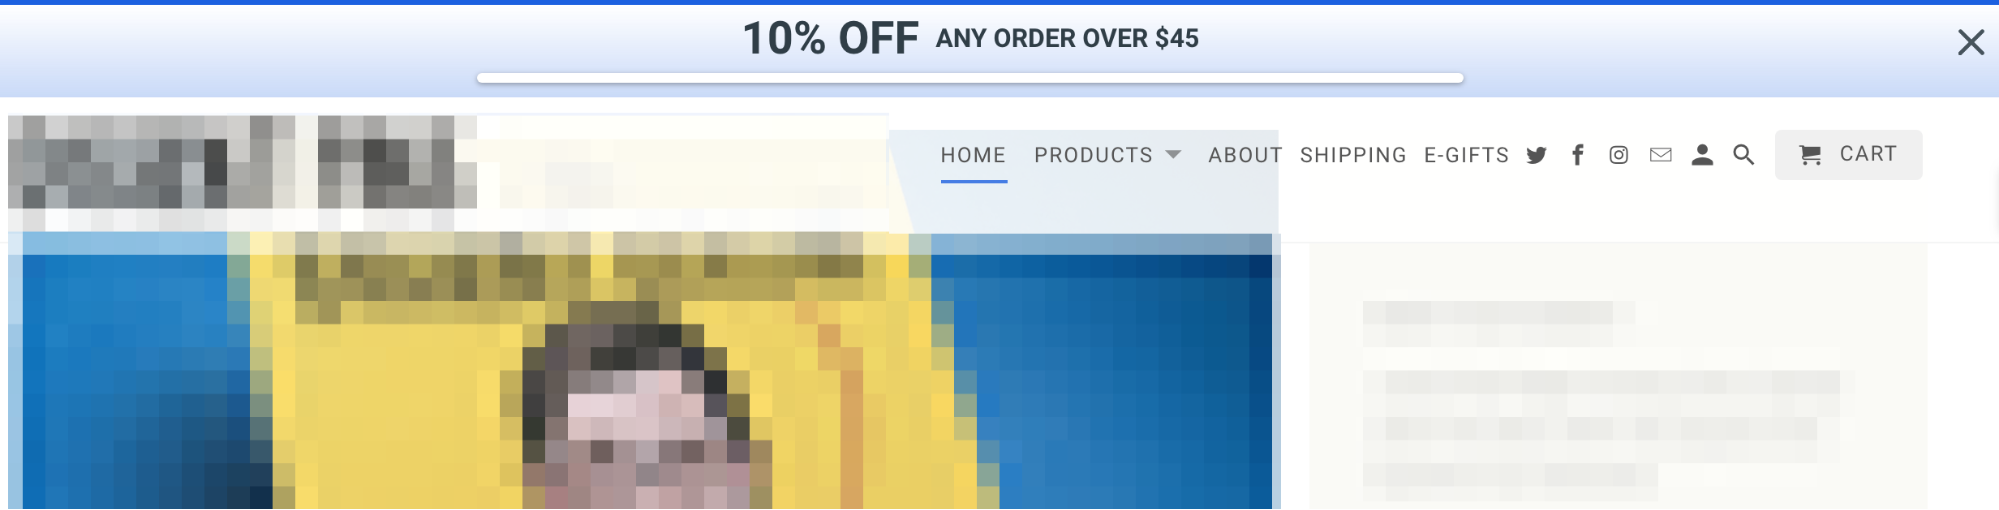 Screenshot showing a sumo shortcut bar offering a discount